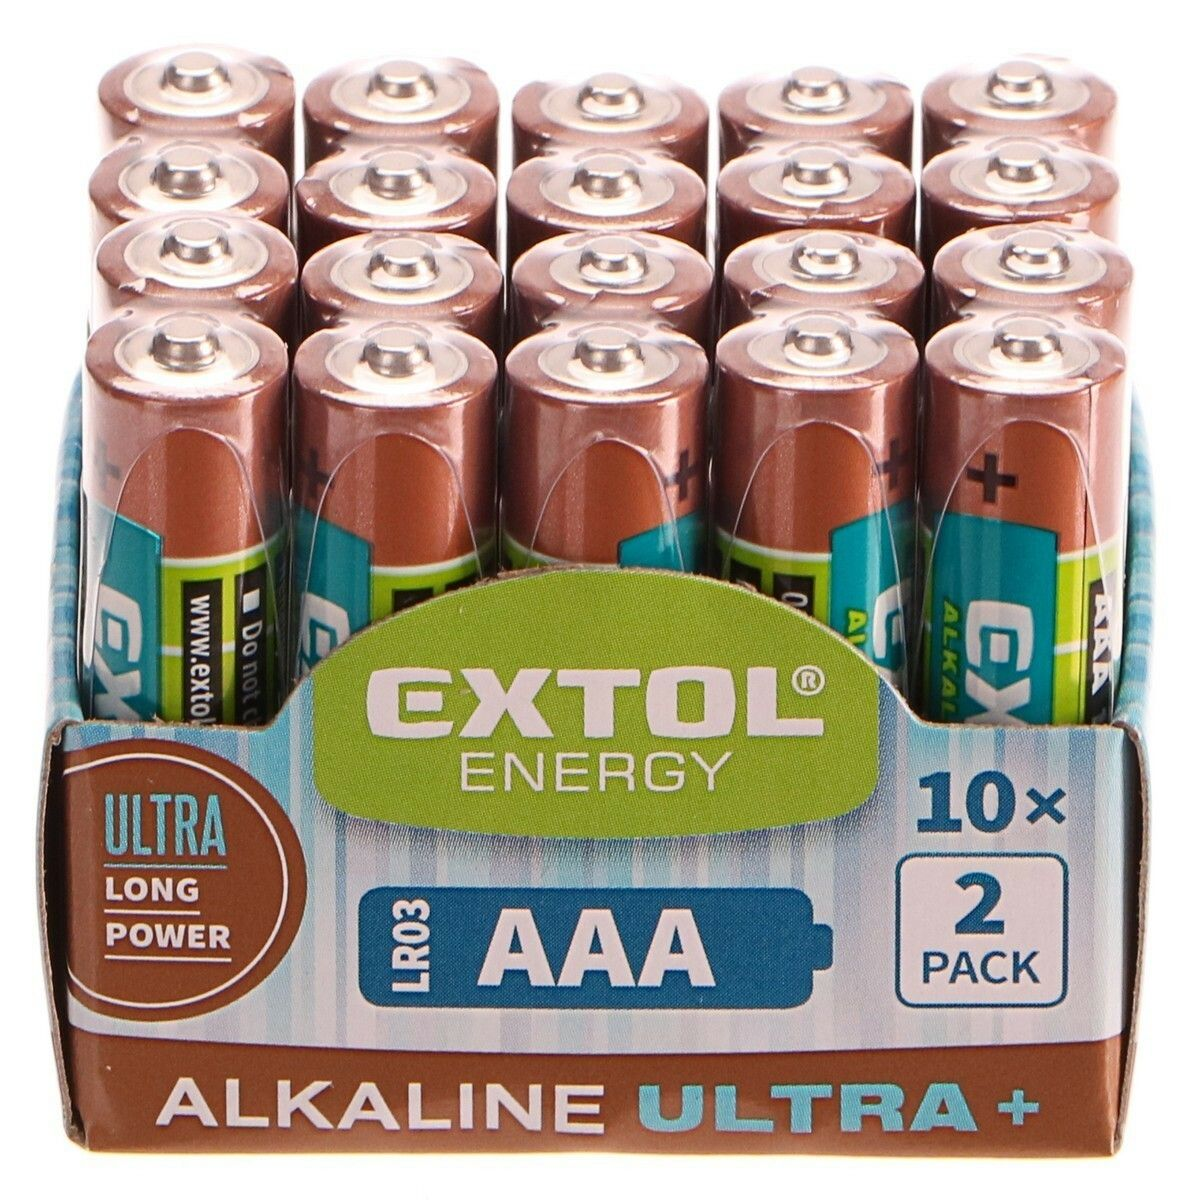 Baterie alkalické EXTOL ENERGY ULTRA , 20ks, 1,5V AAA (LR03) EXTOL LIGHT